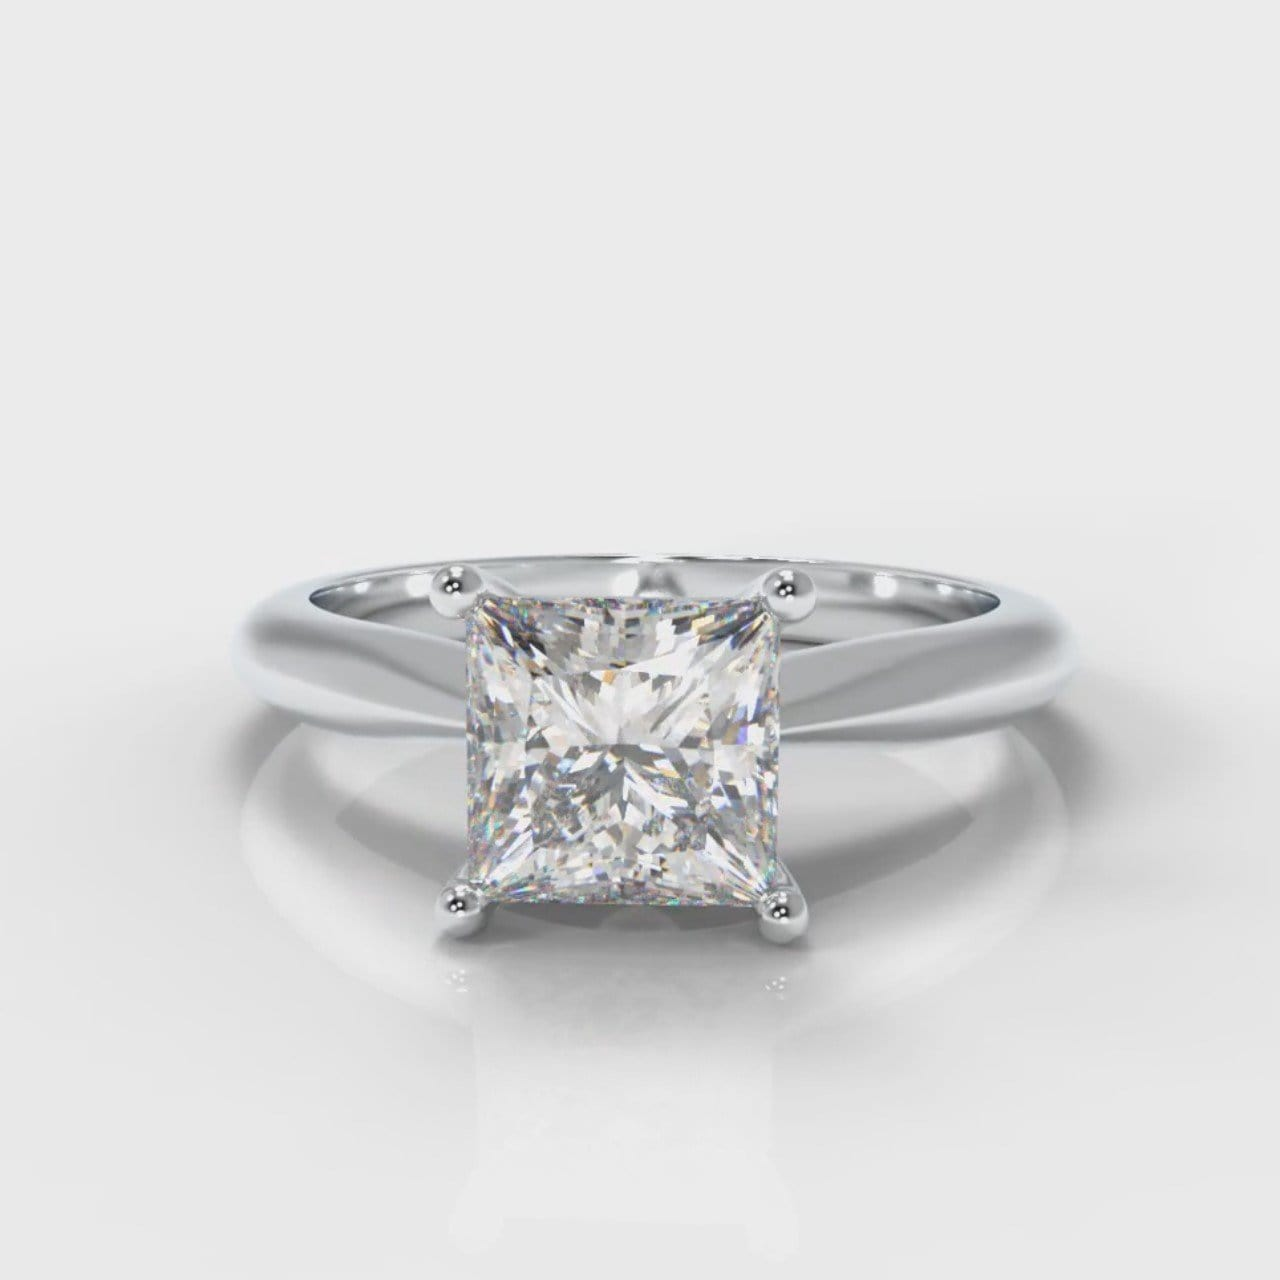 Carrée Solitaire Princess Cut Diamond Engagement Ring